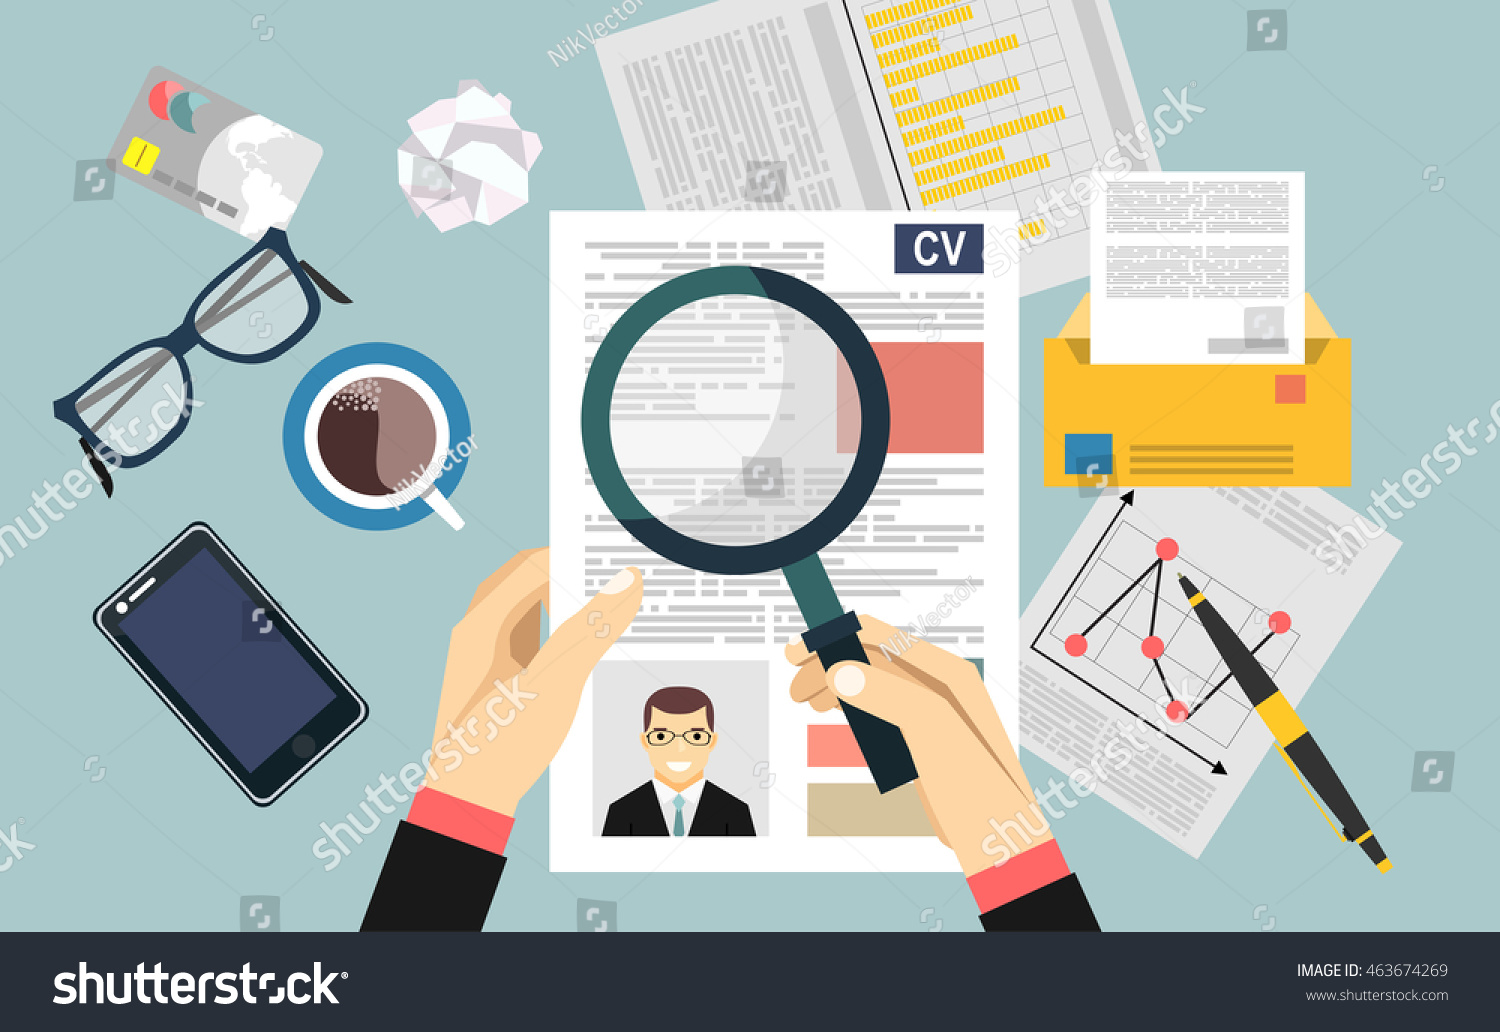 Job Interview Concept Business Cv Resume Stock Vector Royalty Free